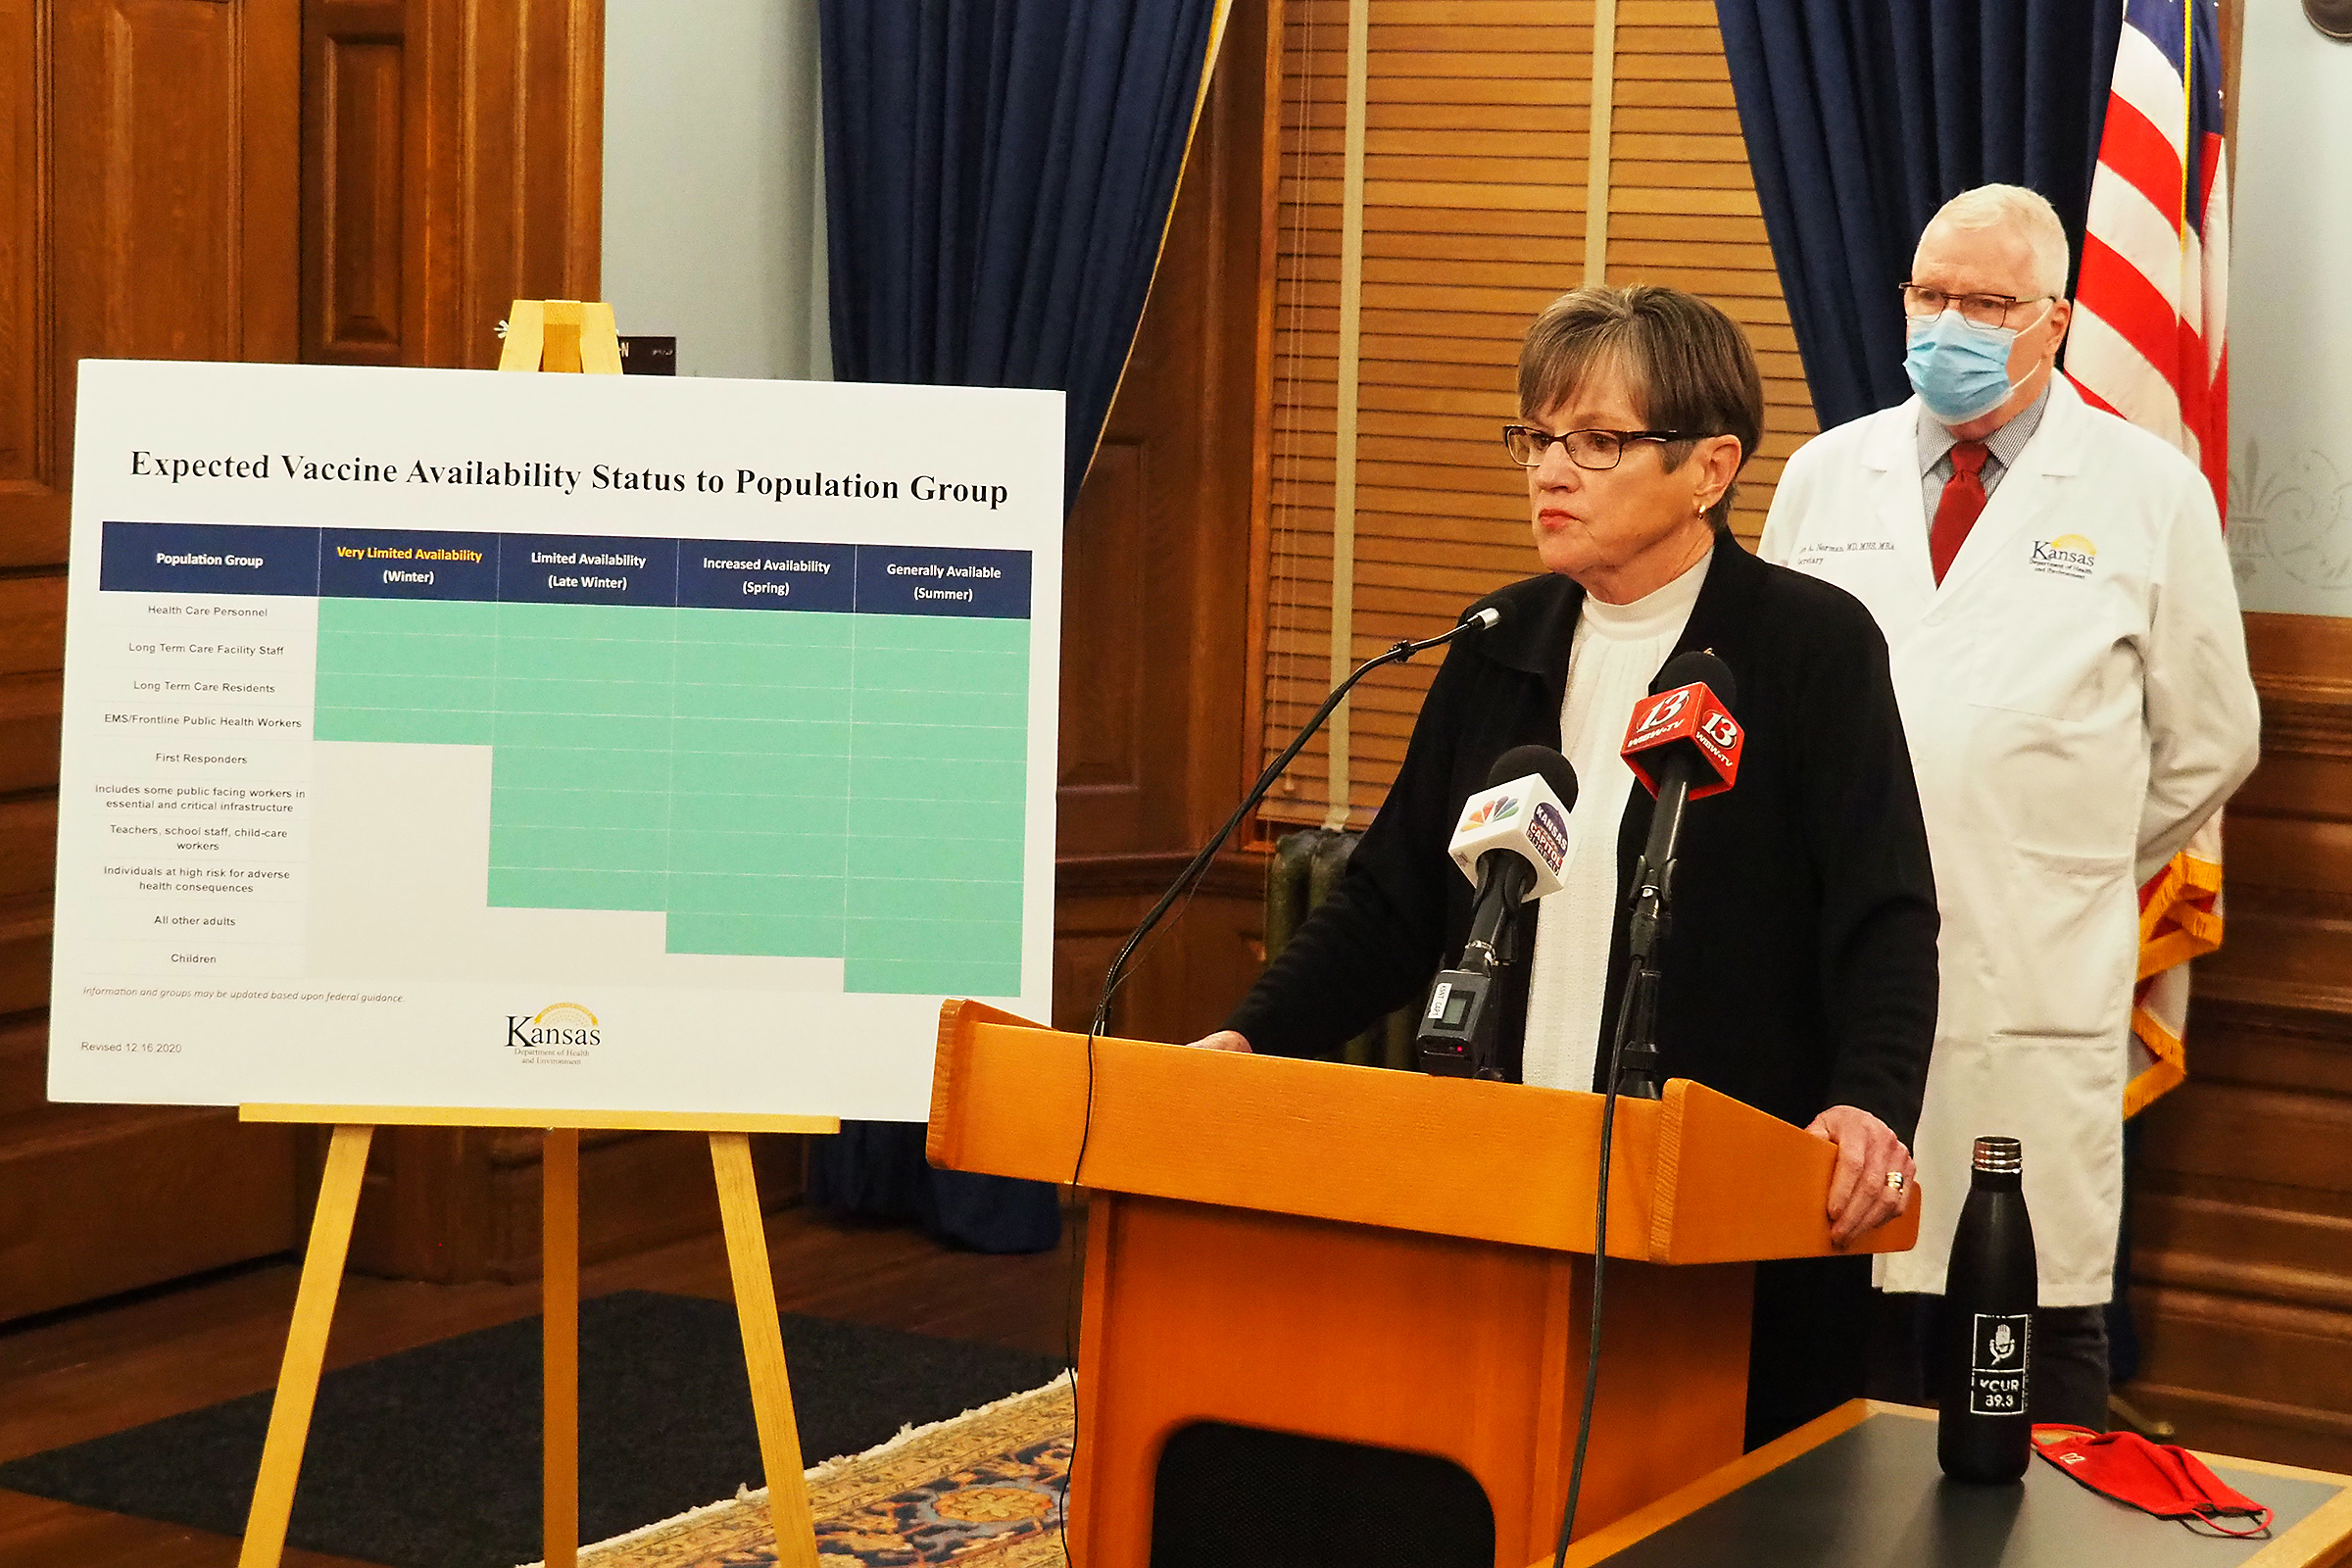 Gov. Laura Kelly said during a news conference at the Capitol on Wednesday that start of vaccinations for COVID-19 bring hope and urged Congress to expand financial relief to states and communities hit by the pandemic. (Tim Carpenter/Kansas Reflector)